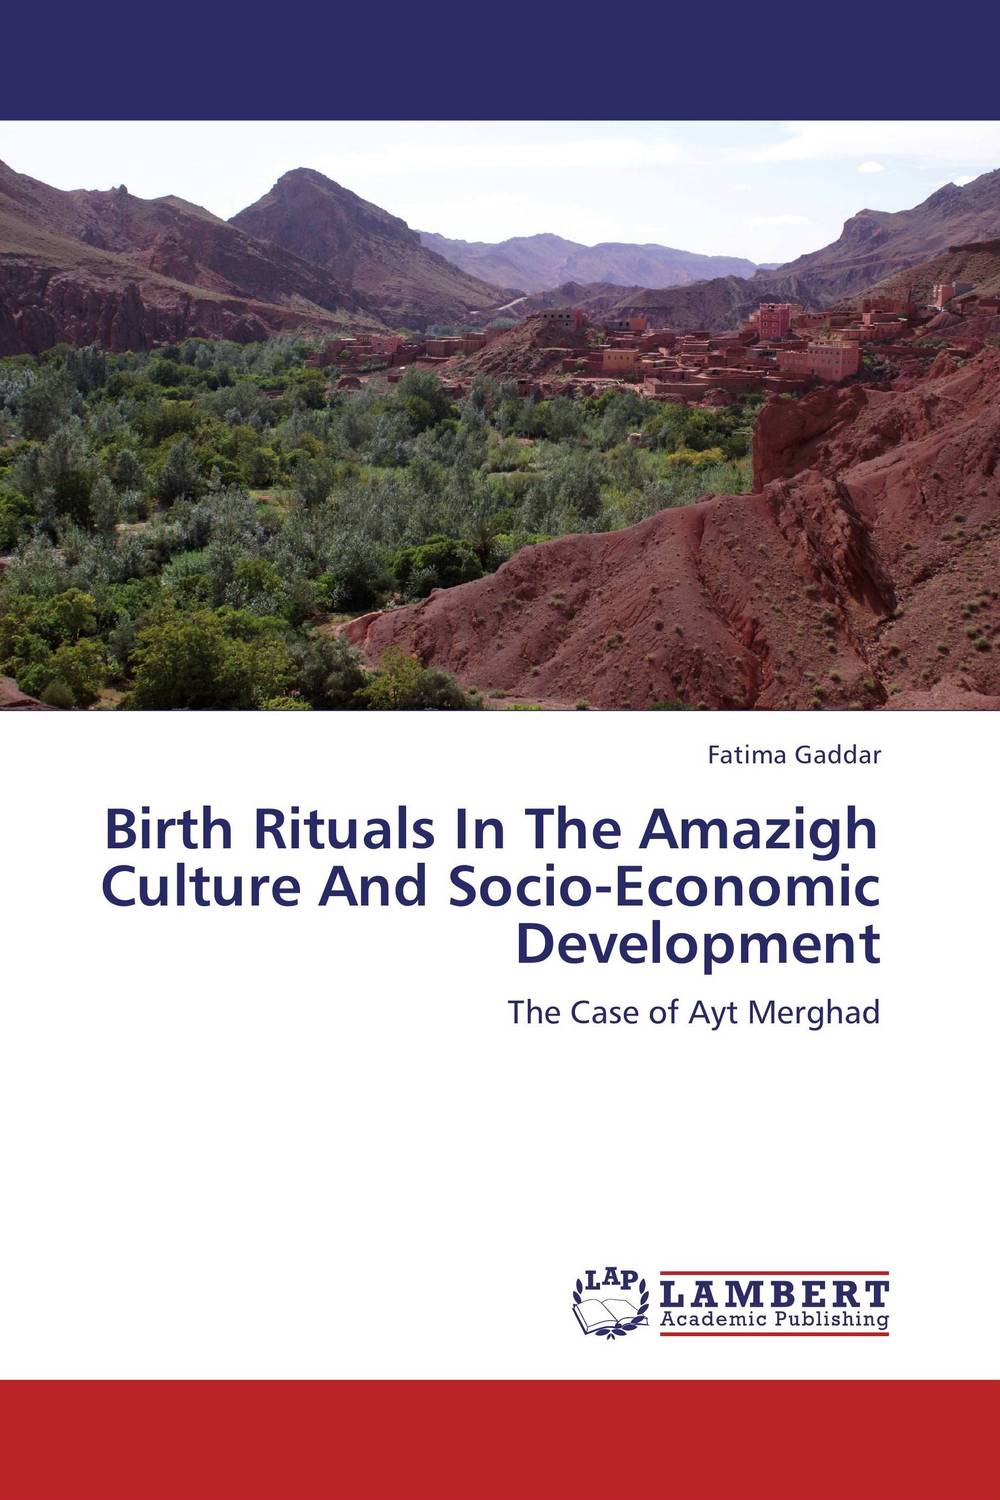 Birth Rituals In The Amazigh Culture And Socio-Economic Development the heir